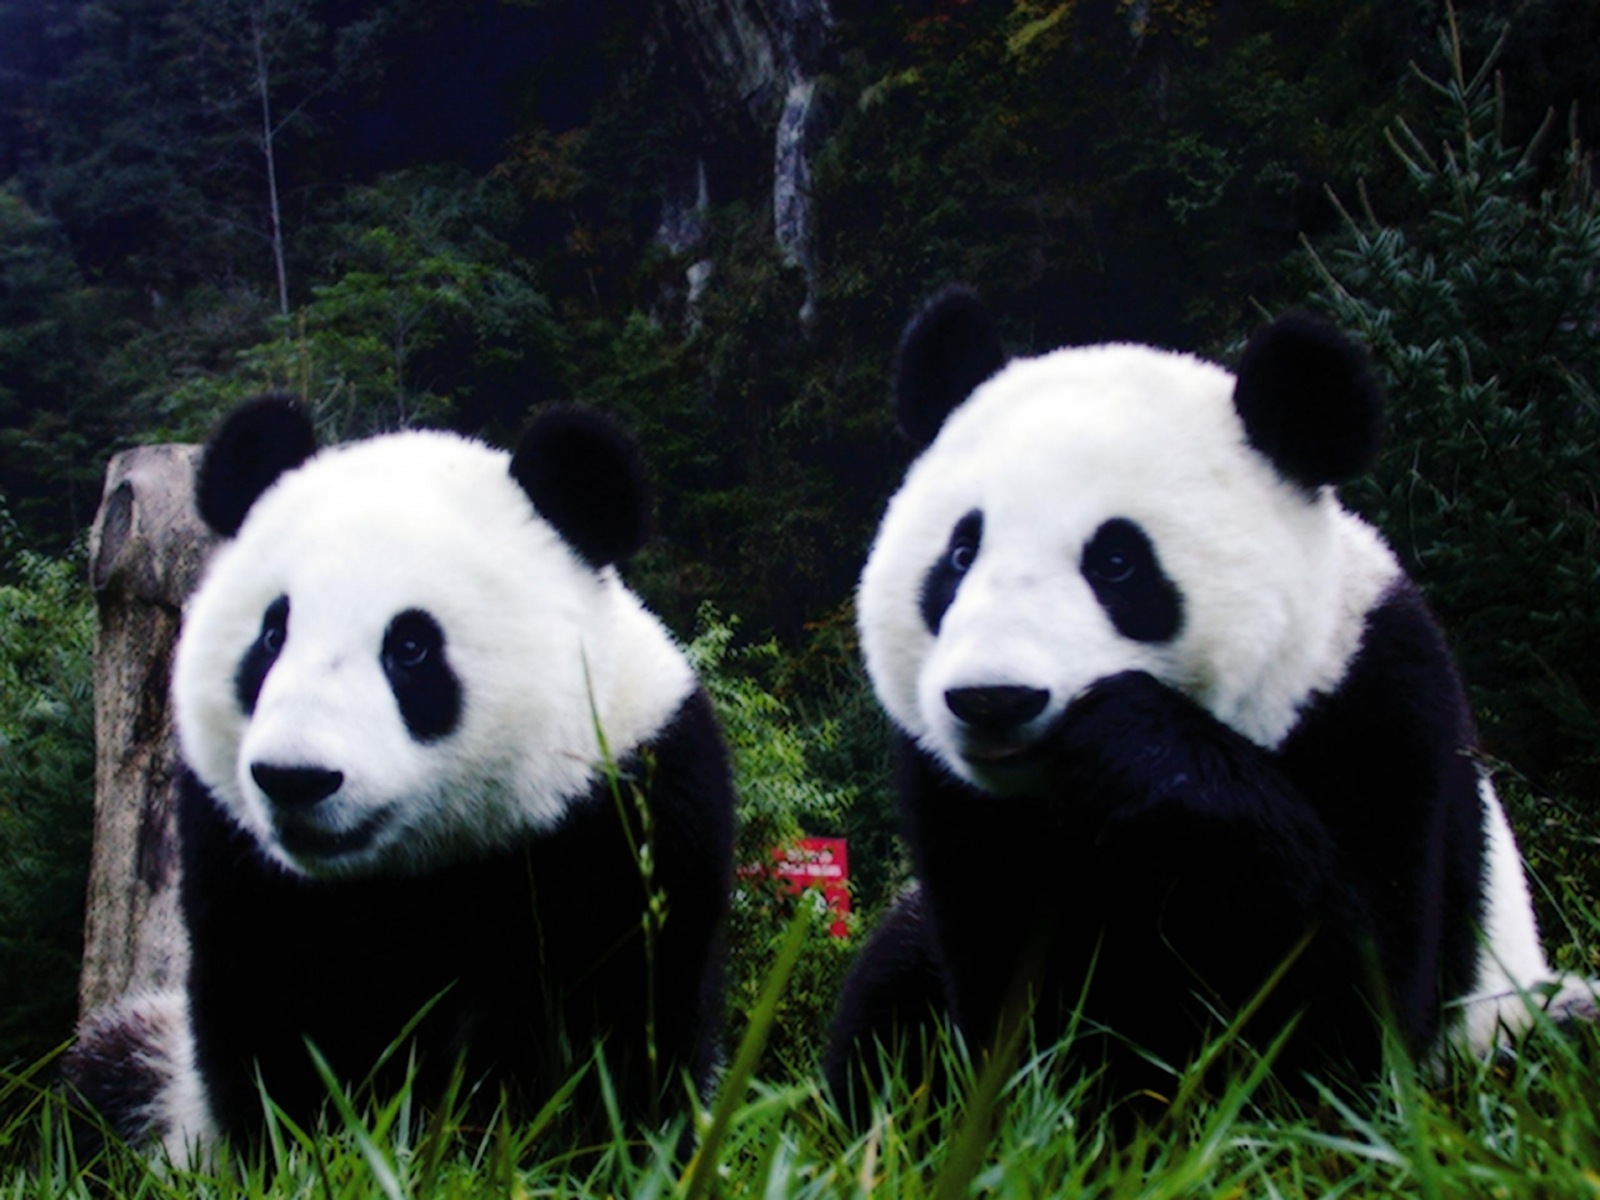 Cute Panda pictures in high definition or widescreen resolution Cute 1600x1200